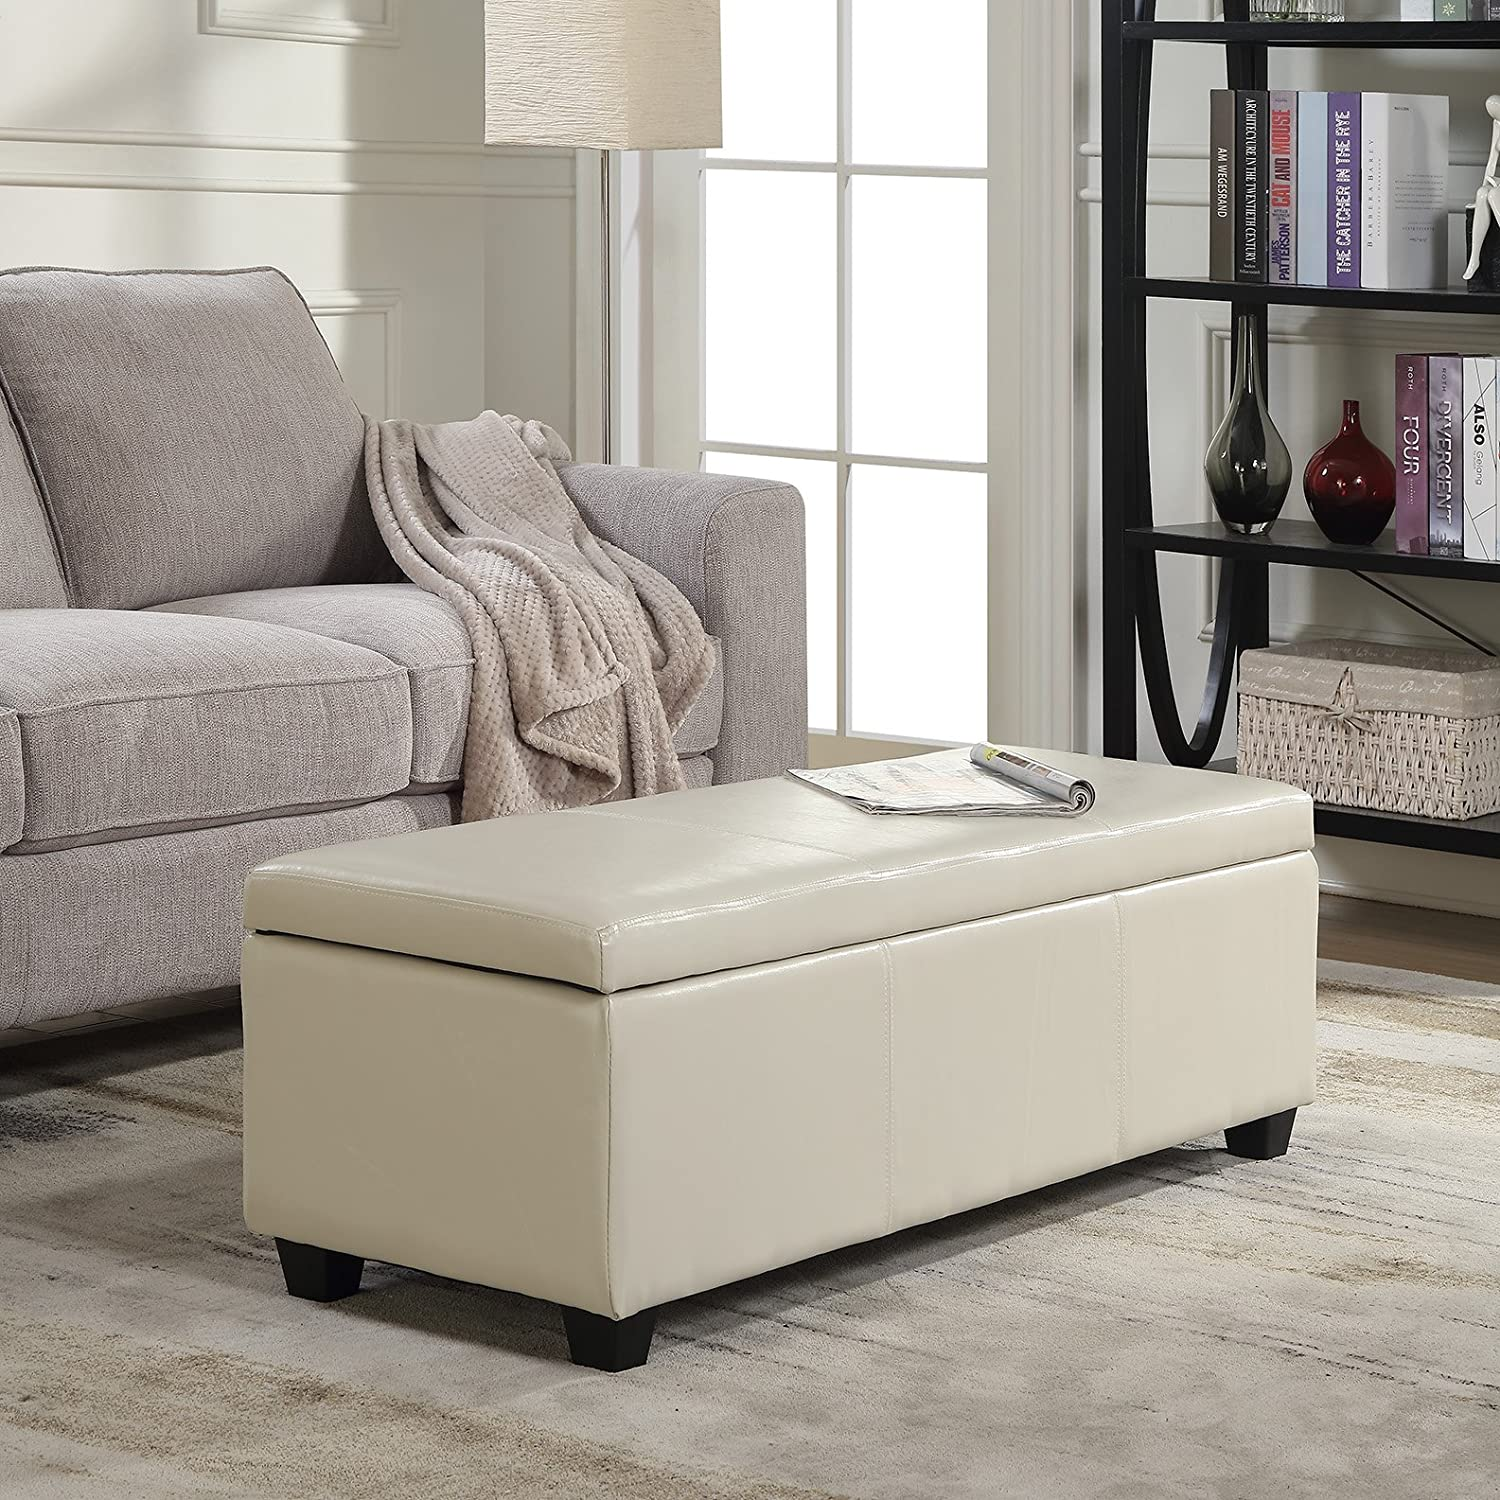 Amazon com belleze modern elegant ottoman storage bench living bedroom room home faux leather 48 inch cream kitchen dining